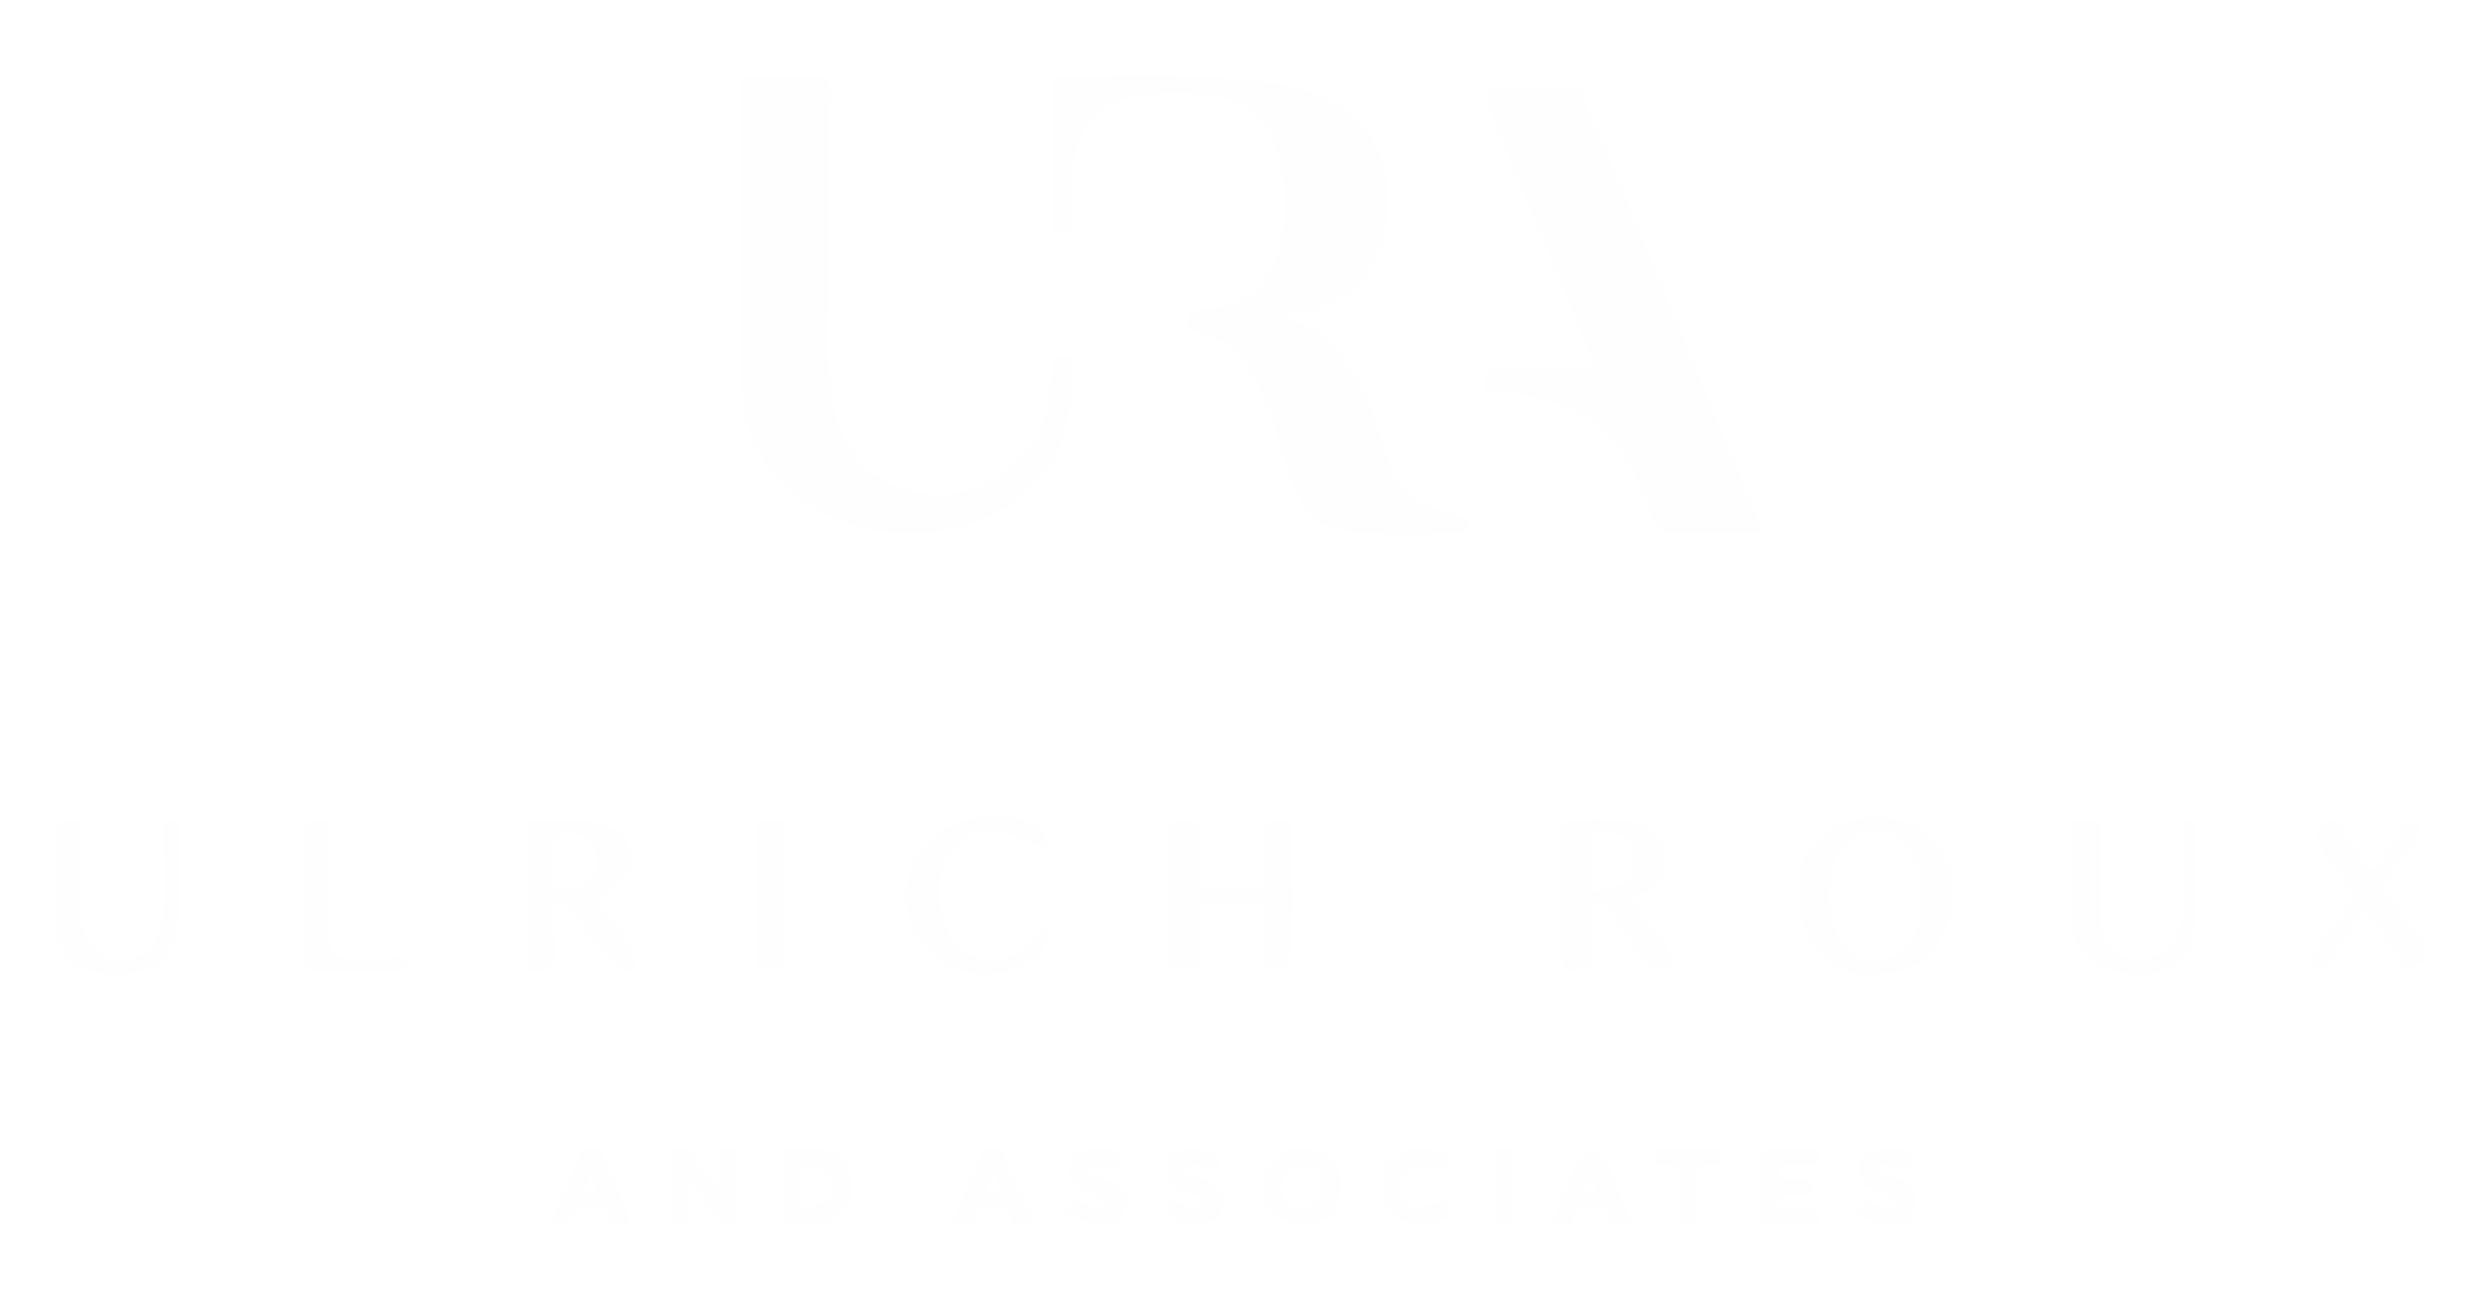 Ulrich Roux and Associates